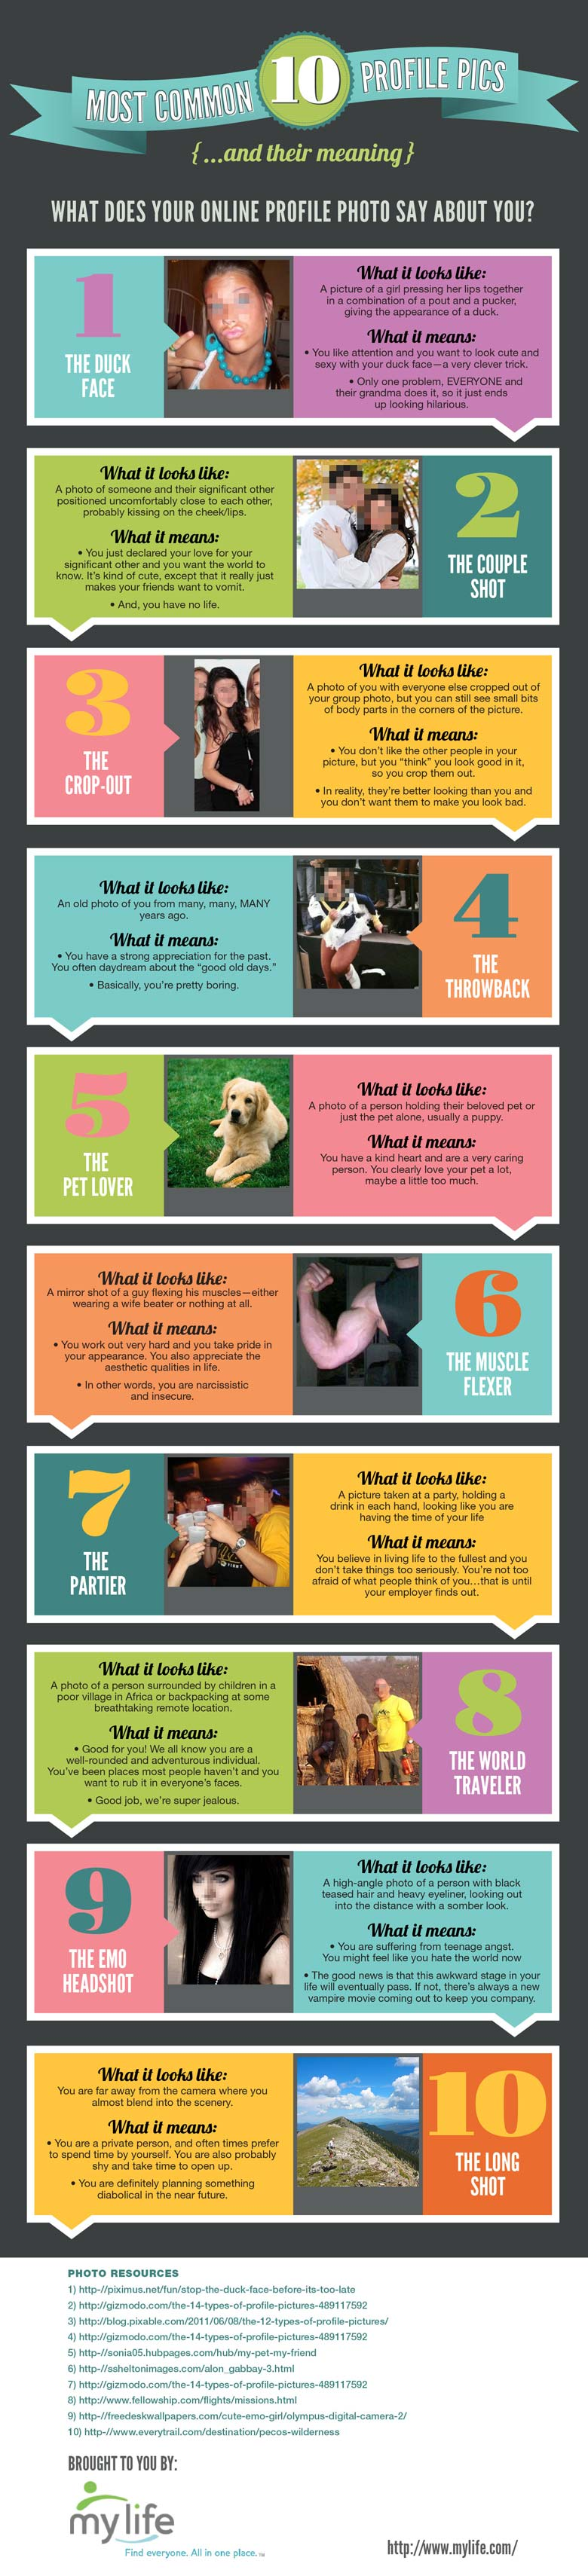 Ten Most Common Profile Pics and Their Meaning